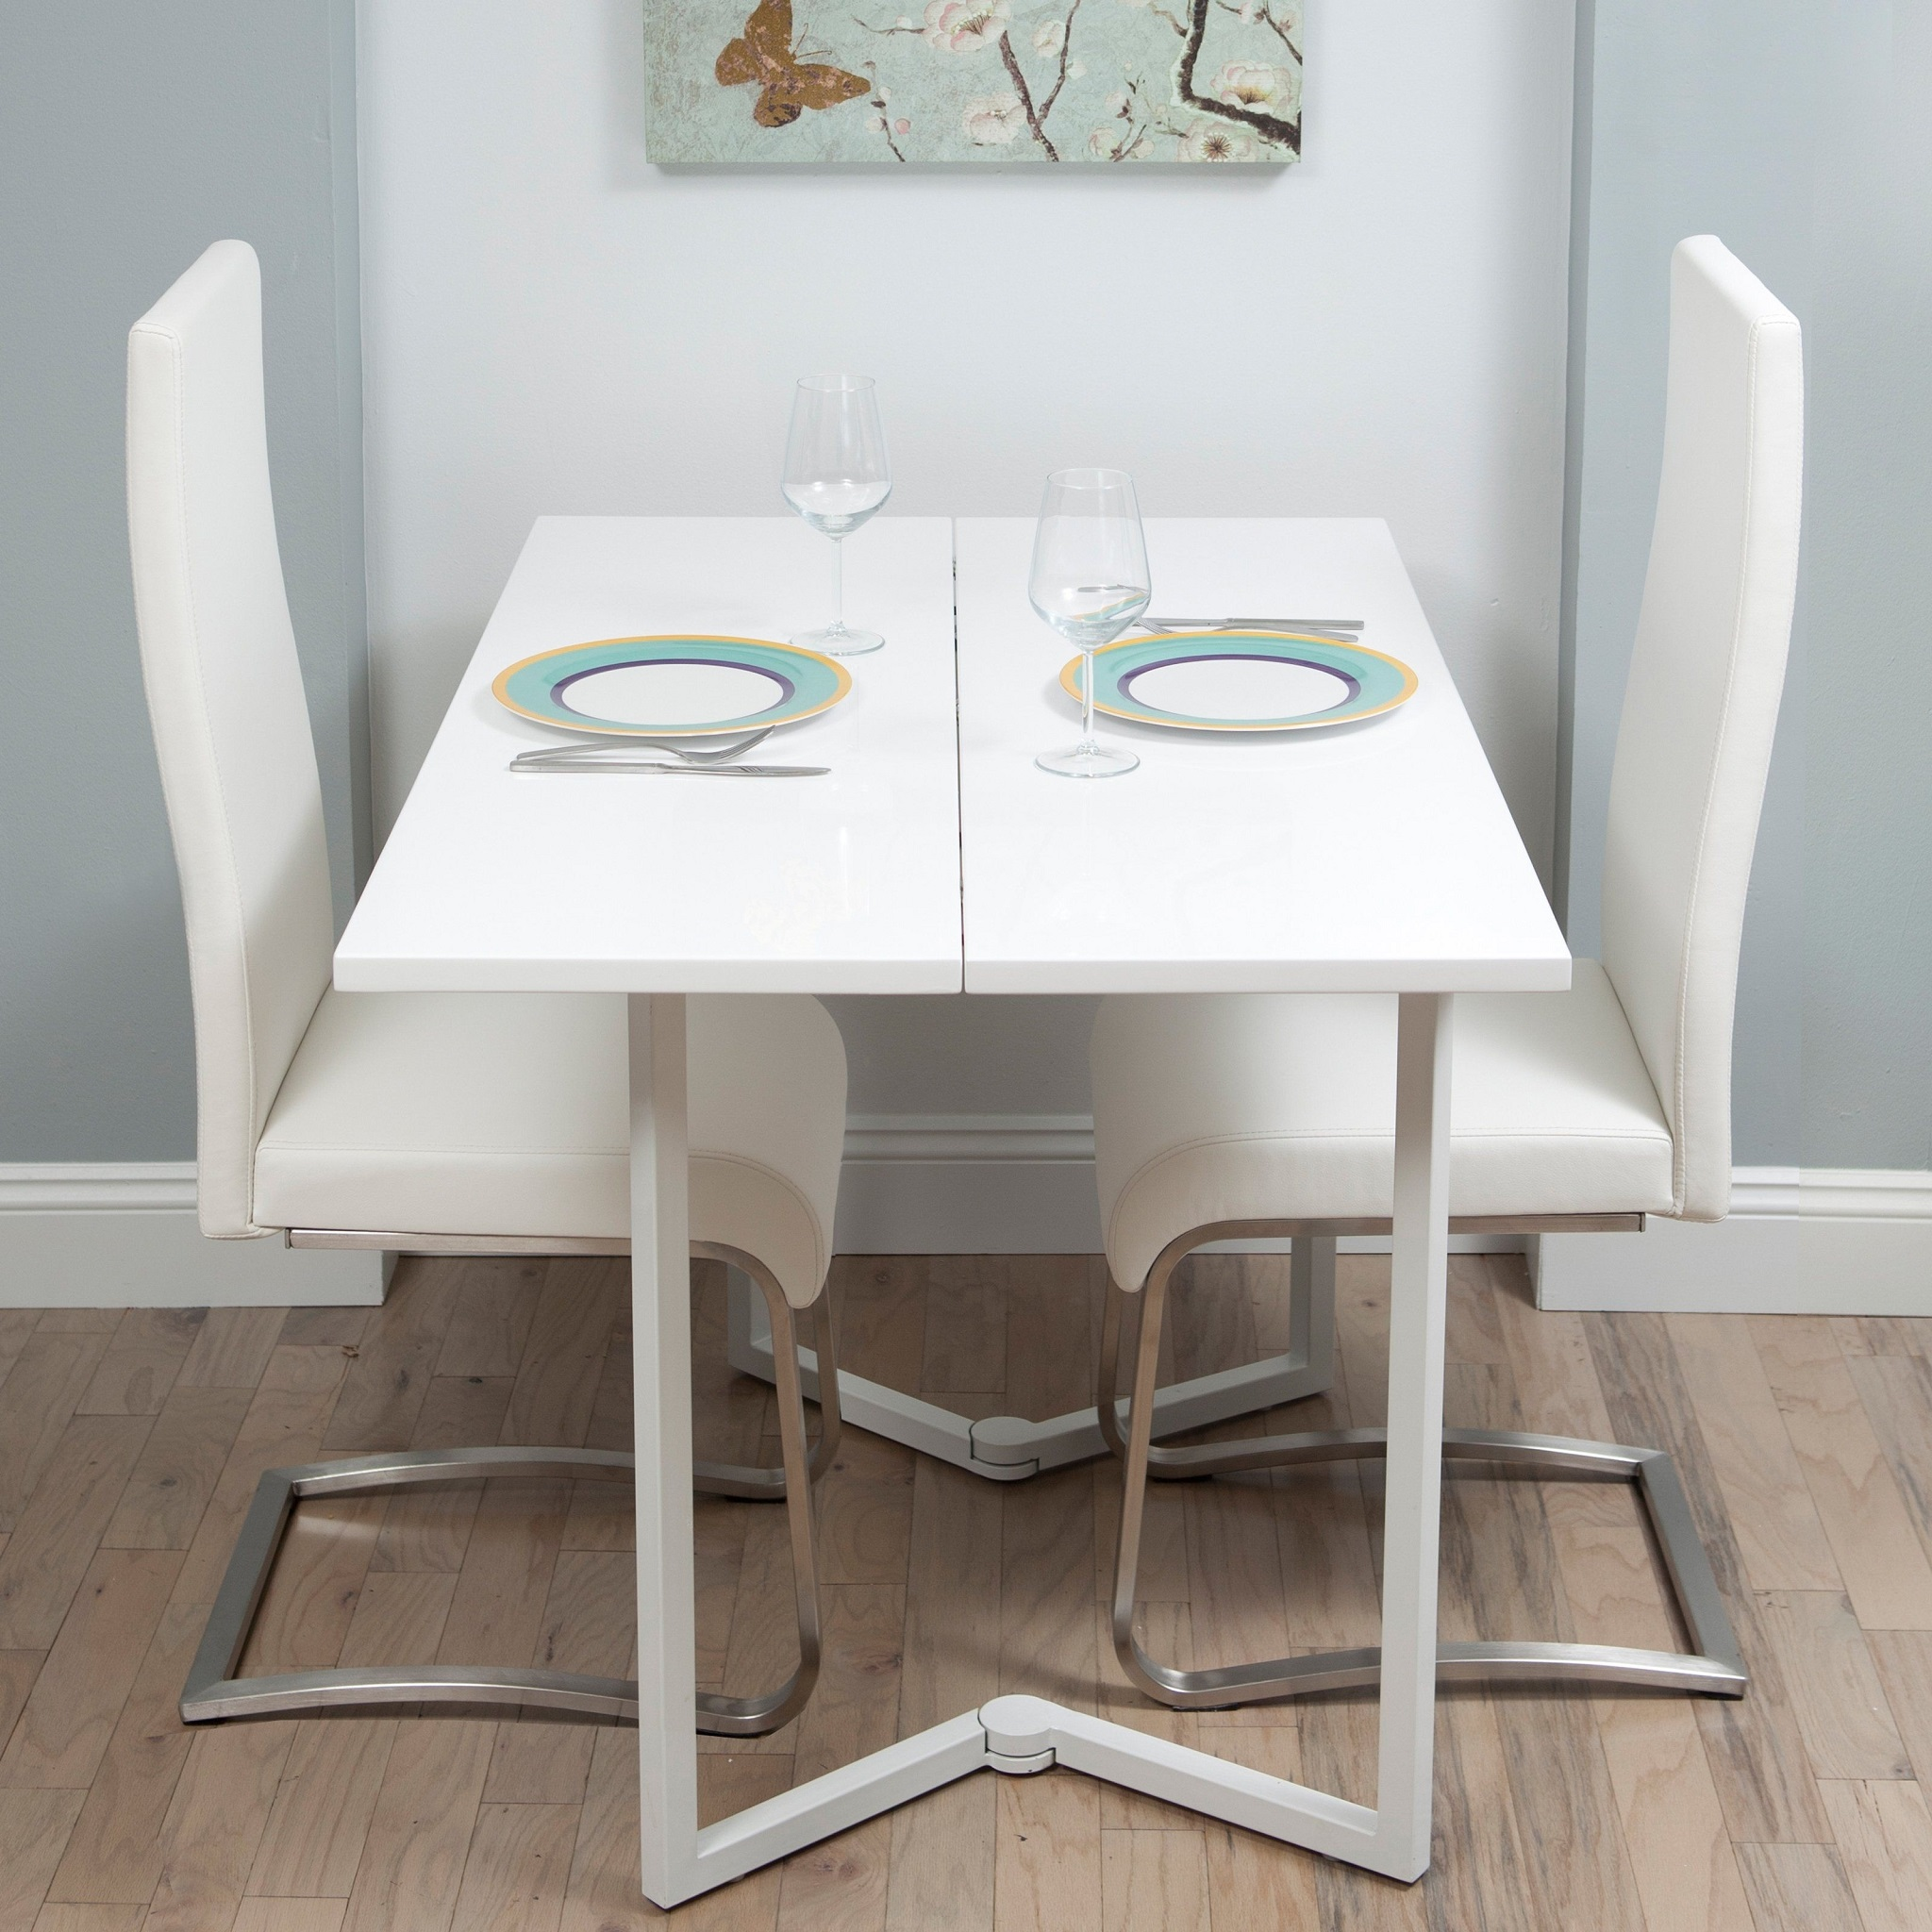 Fold Up Table For Apartment 330 House Decor Tips